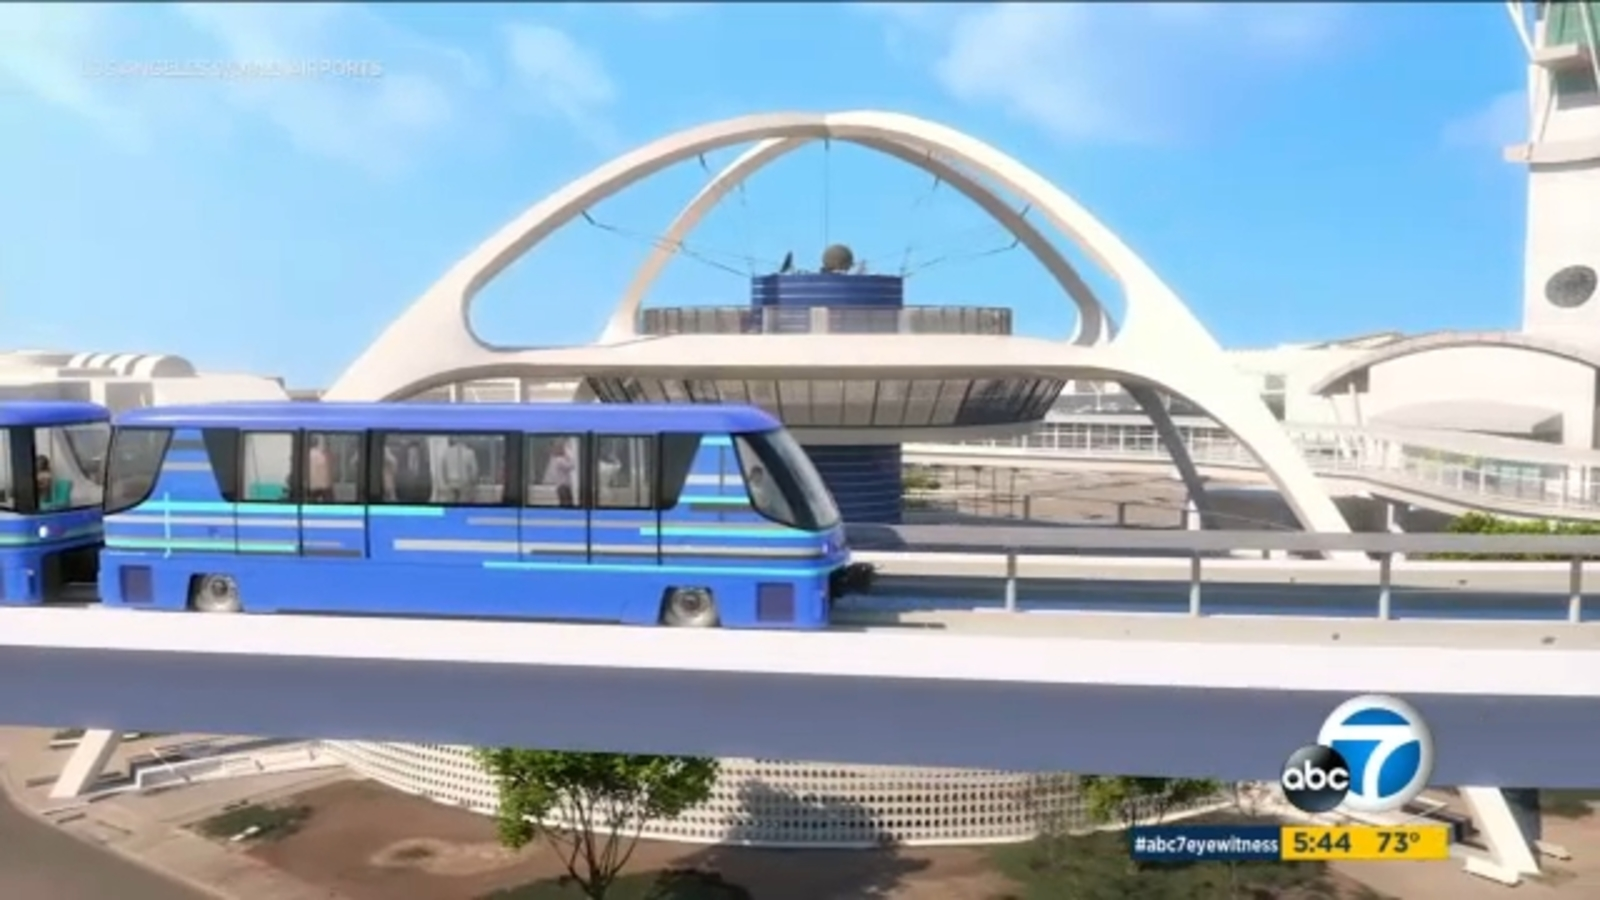 New People Mover train coming to LAX expected to revolutionize travel